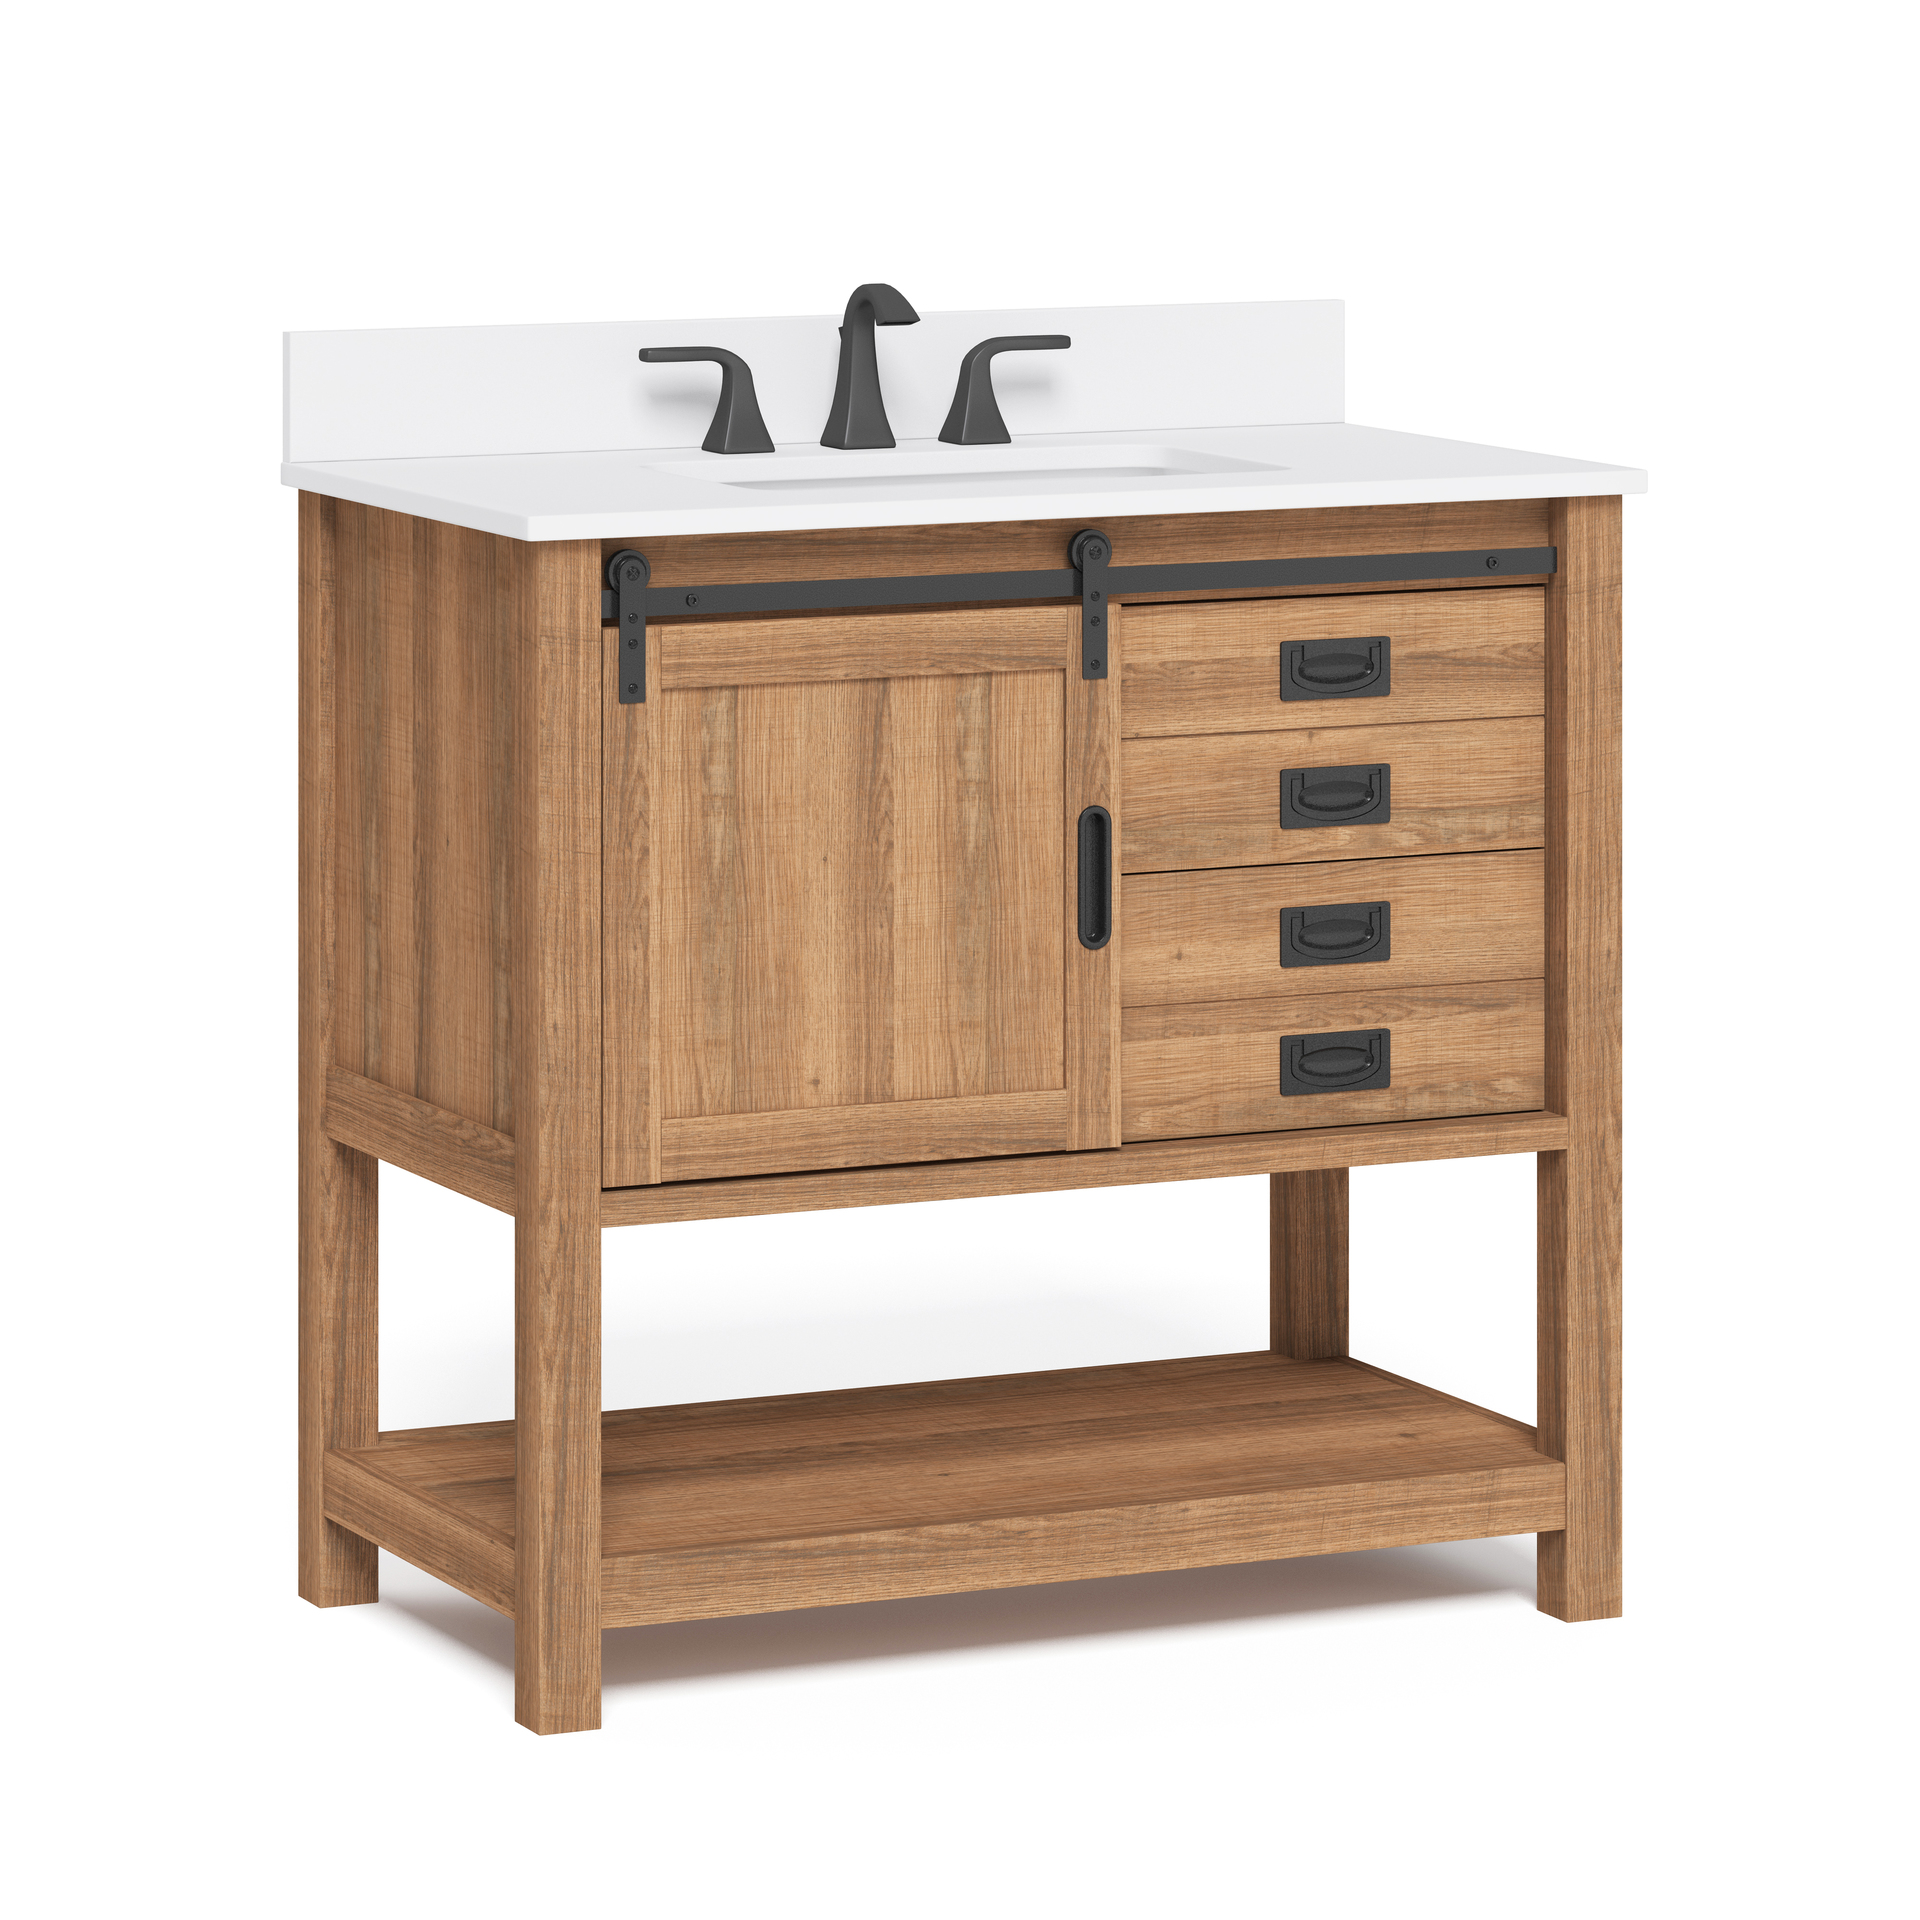 36 Inch Bathroom Vanity With Top Under 400 Image Of Bathroom And Closet